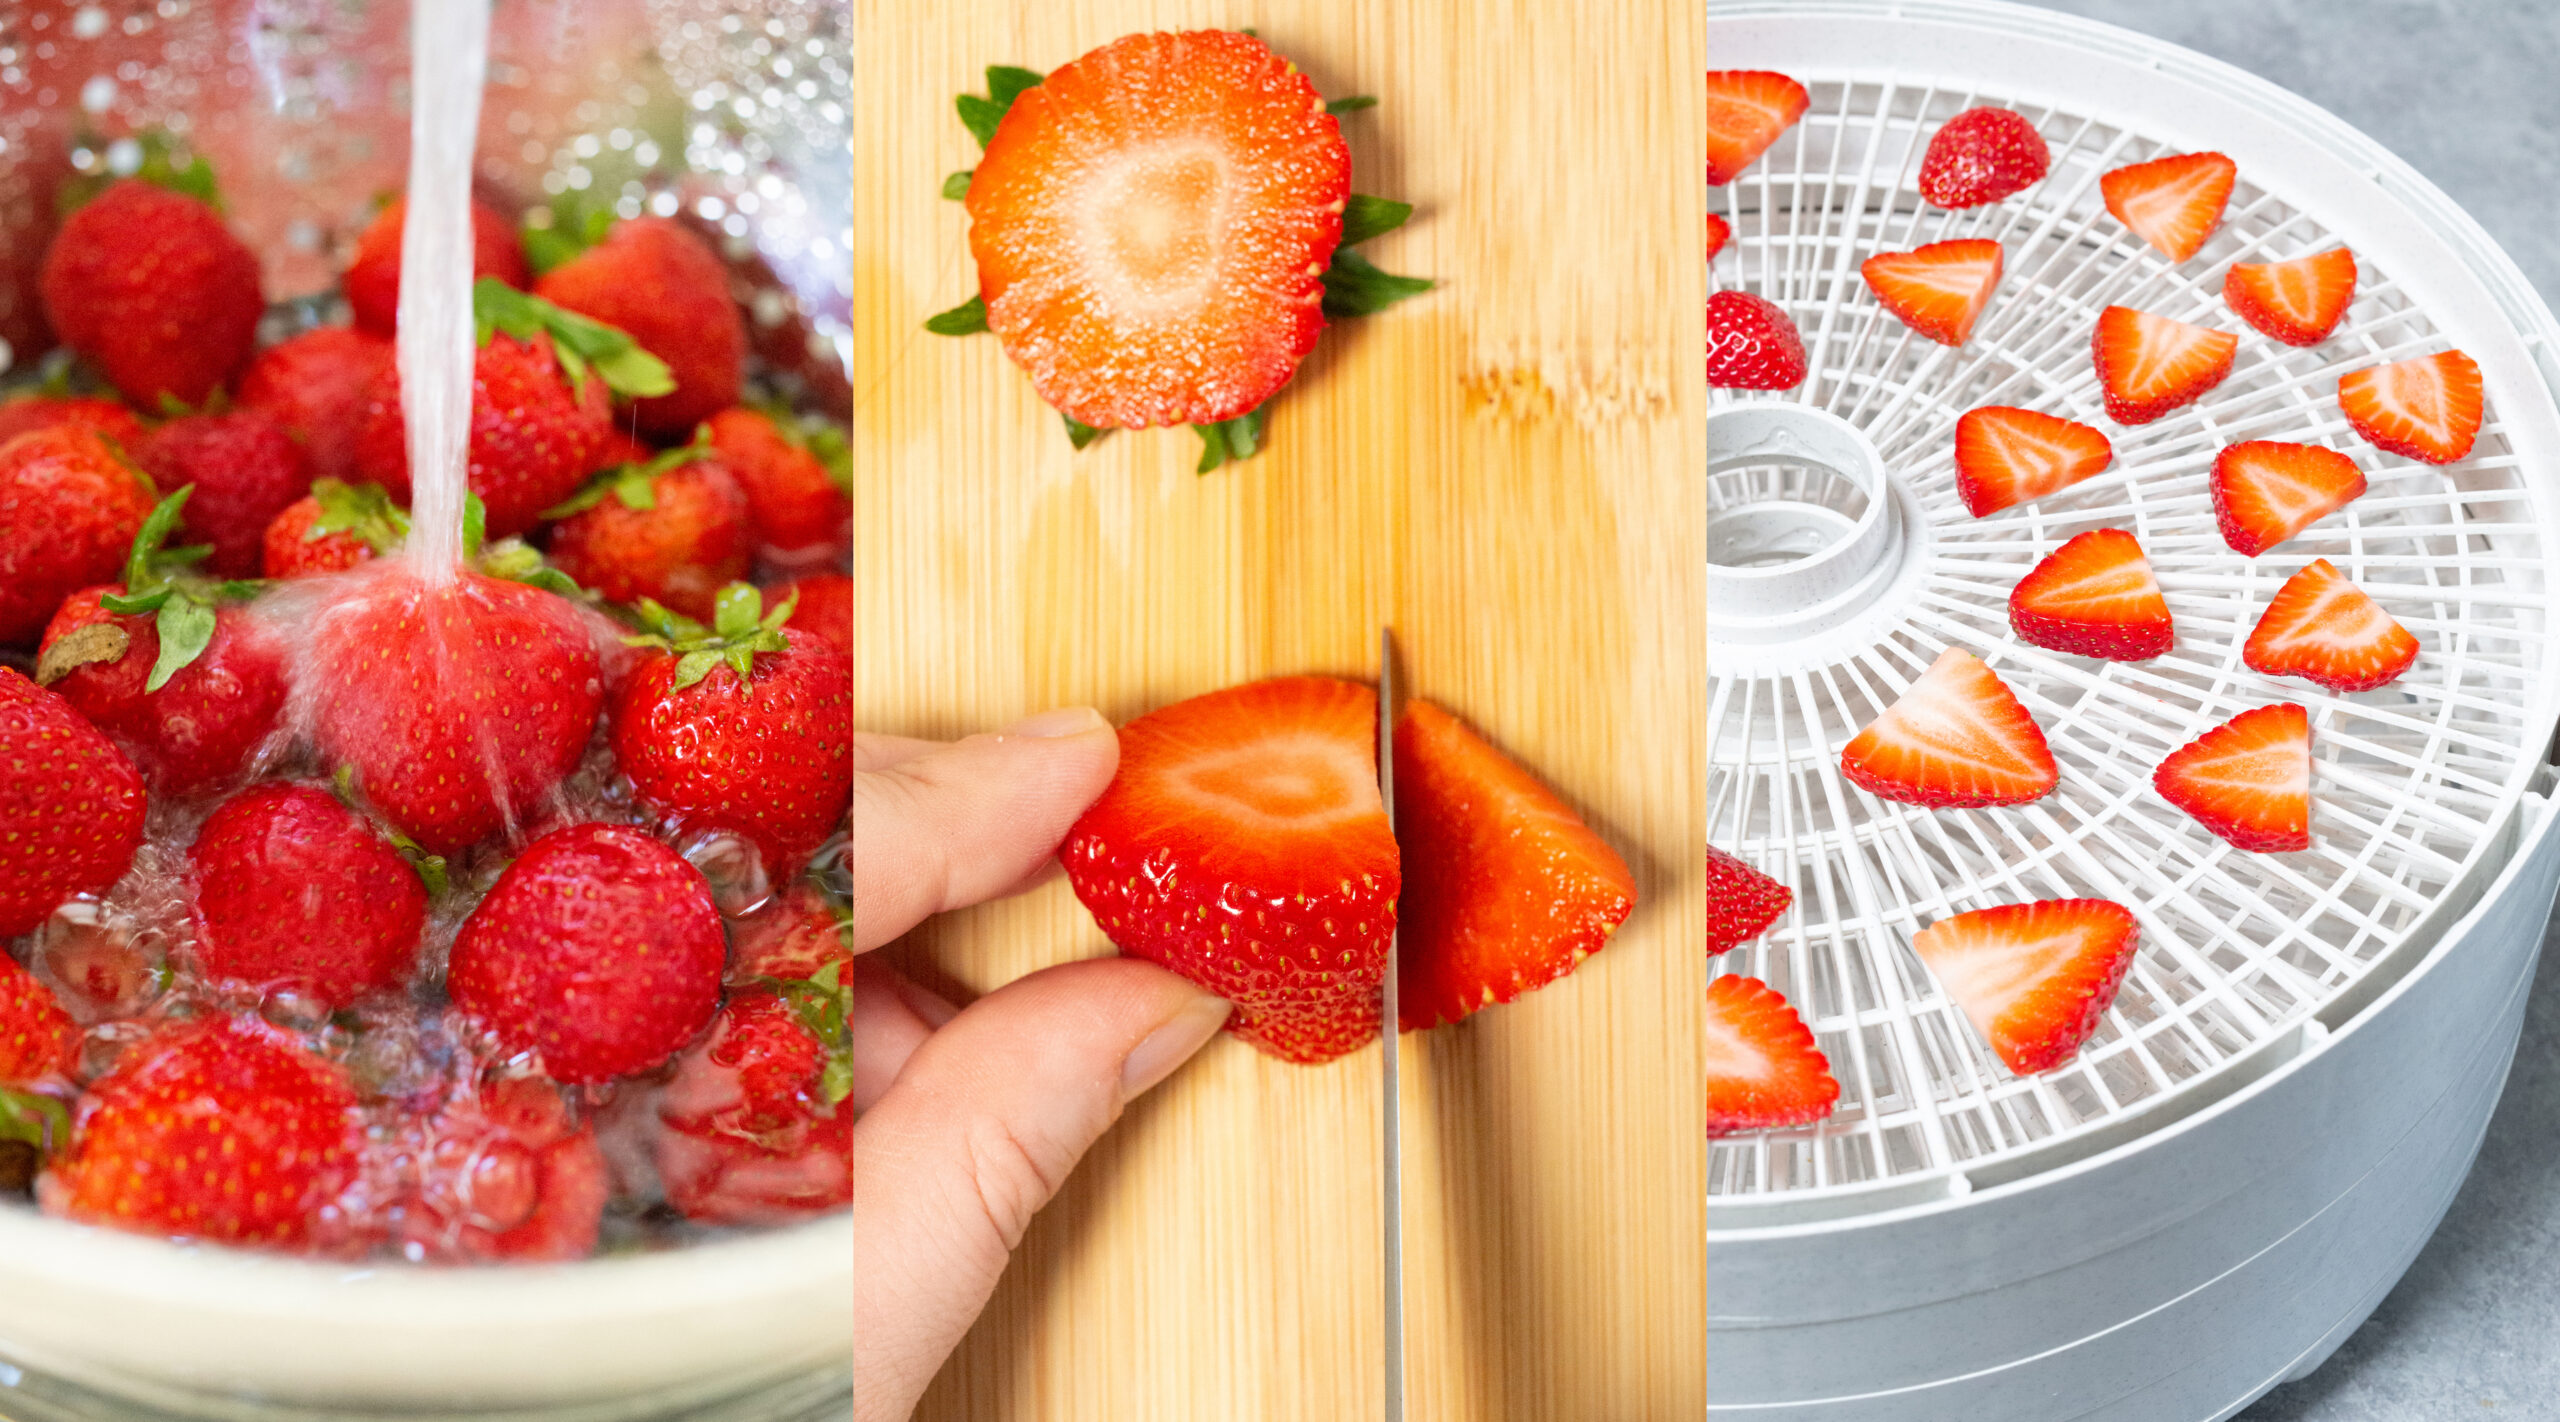 A collage of three photos. The first one shows fresh strawberries being rinsed, the second is a strawberry with its top cut off being sliced, and the third is fresh strawberry slices in a dehdyrator.